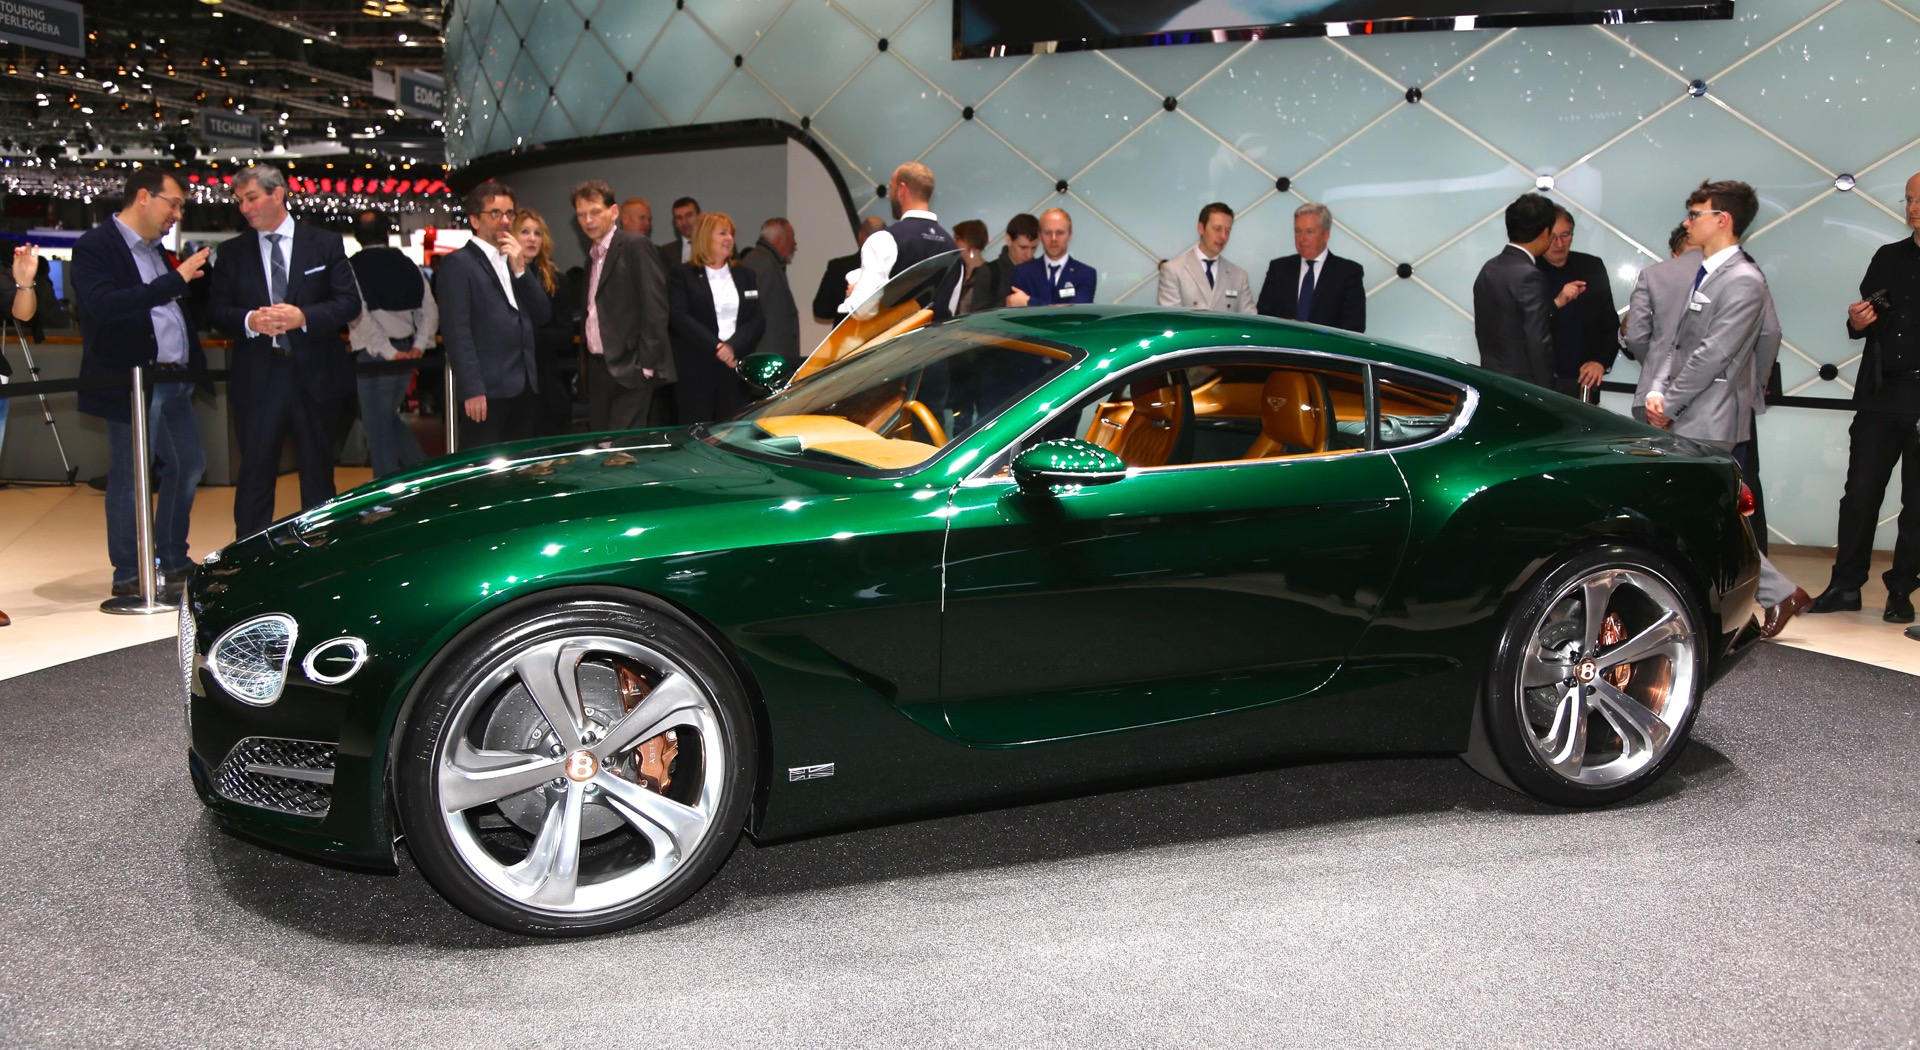 New Exp 10 Speed 6 Concept Hints At Potential Bentley